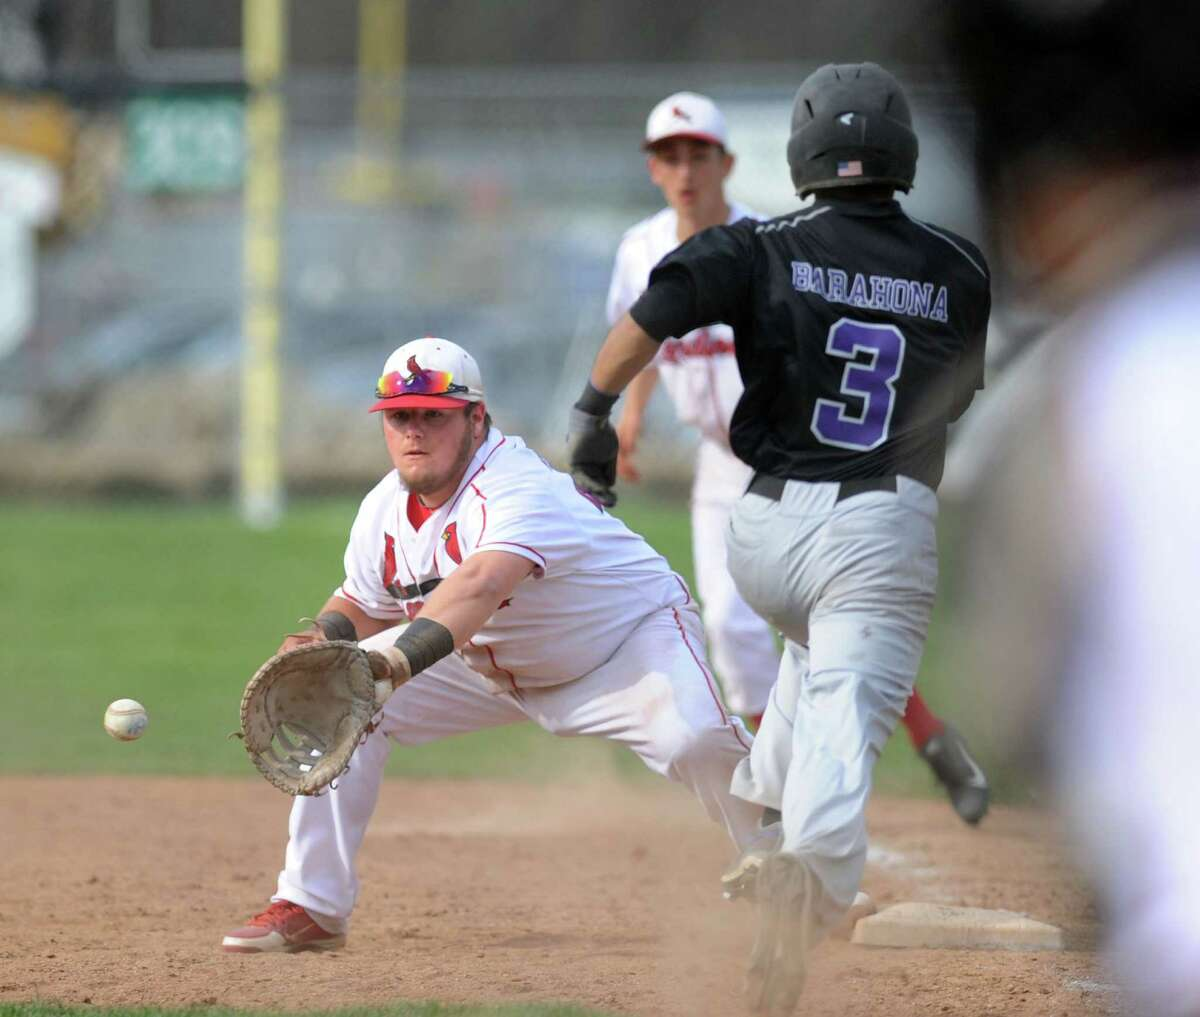 Greenwich first baseman Justin Gaccione, left, takes the throw for an out as Westhill's Randy Barahona (#3) is unable to beat out his bunt during the high school baseball game between Greenwich High School and Westhill High School at Greenwich, Friday afternoon, April 25, 2014.